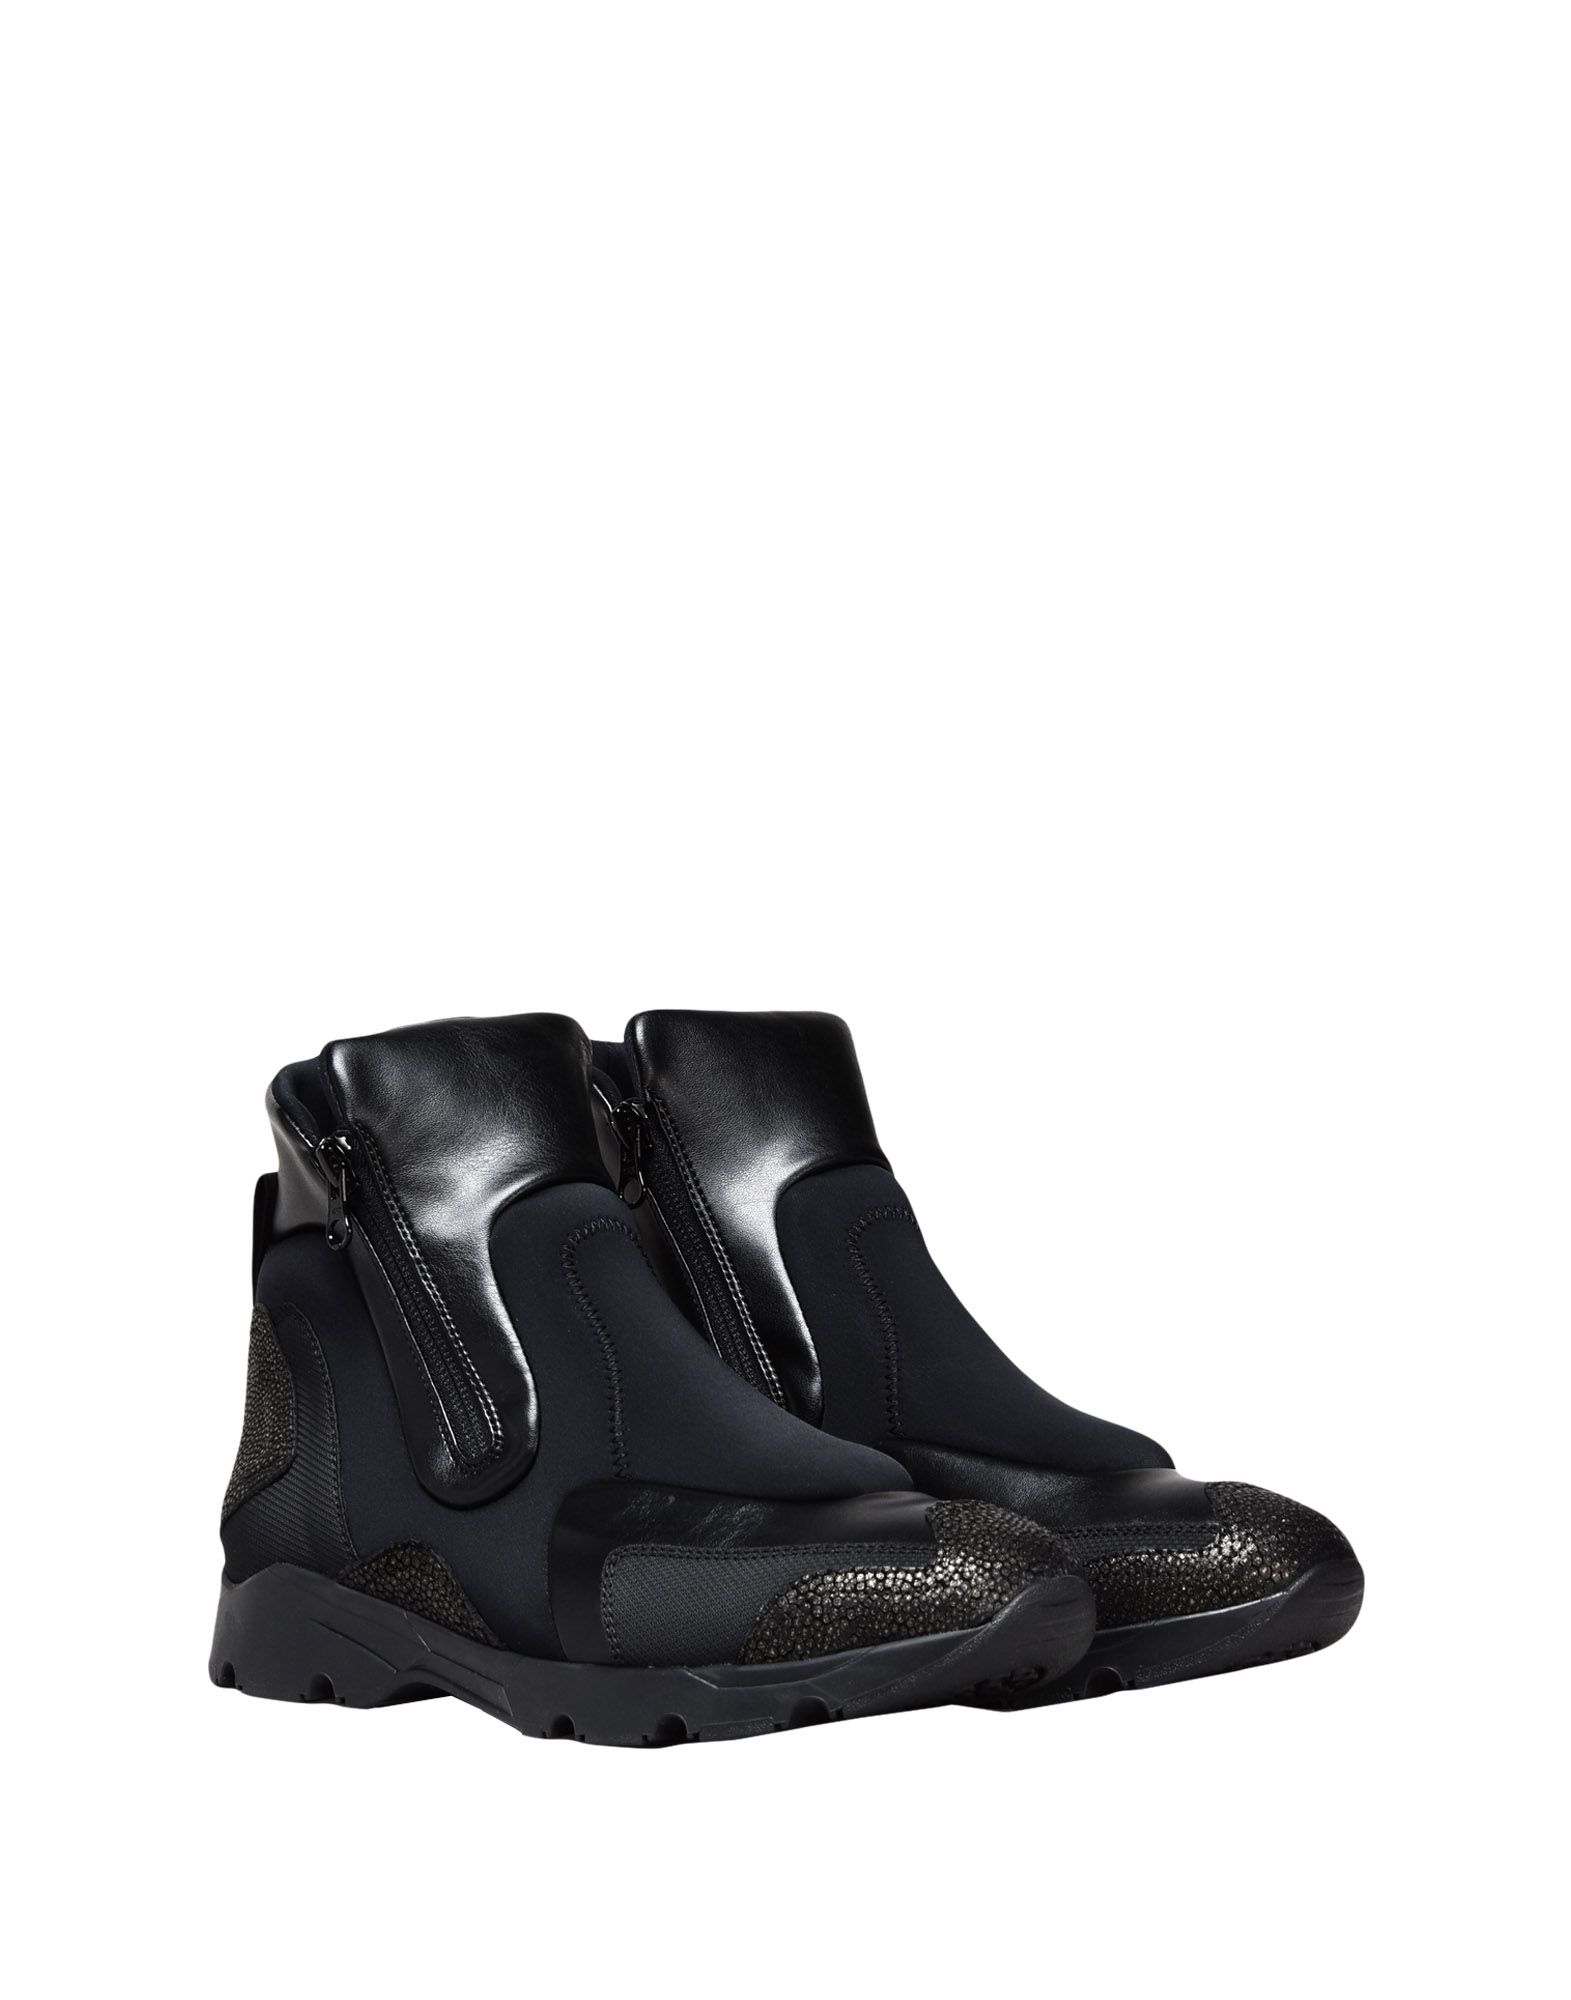 Sneakers Mm6 Maison Margiela Uomo - 11315189JW